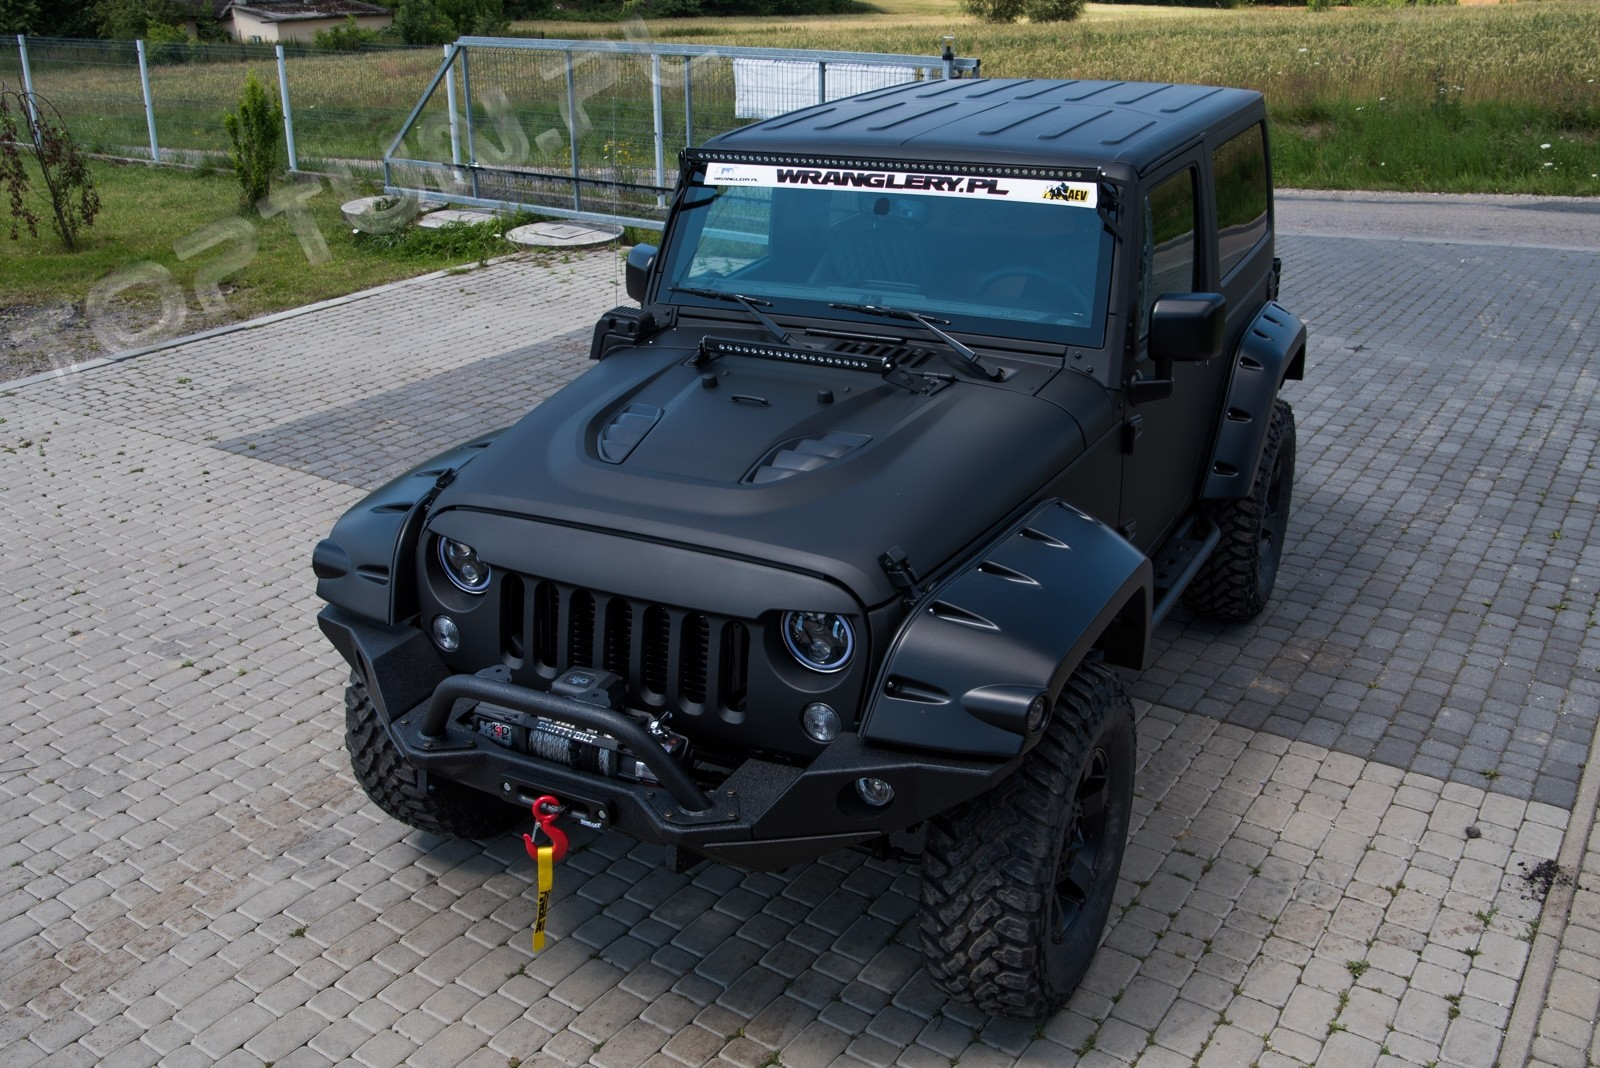 Капот Jeep Wrangler RUBICON дизайн 10th. ANNIVERSARY фото